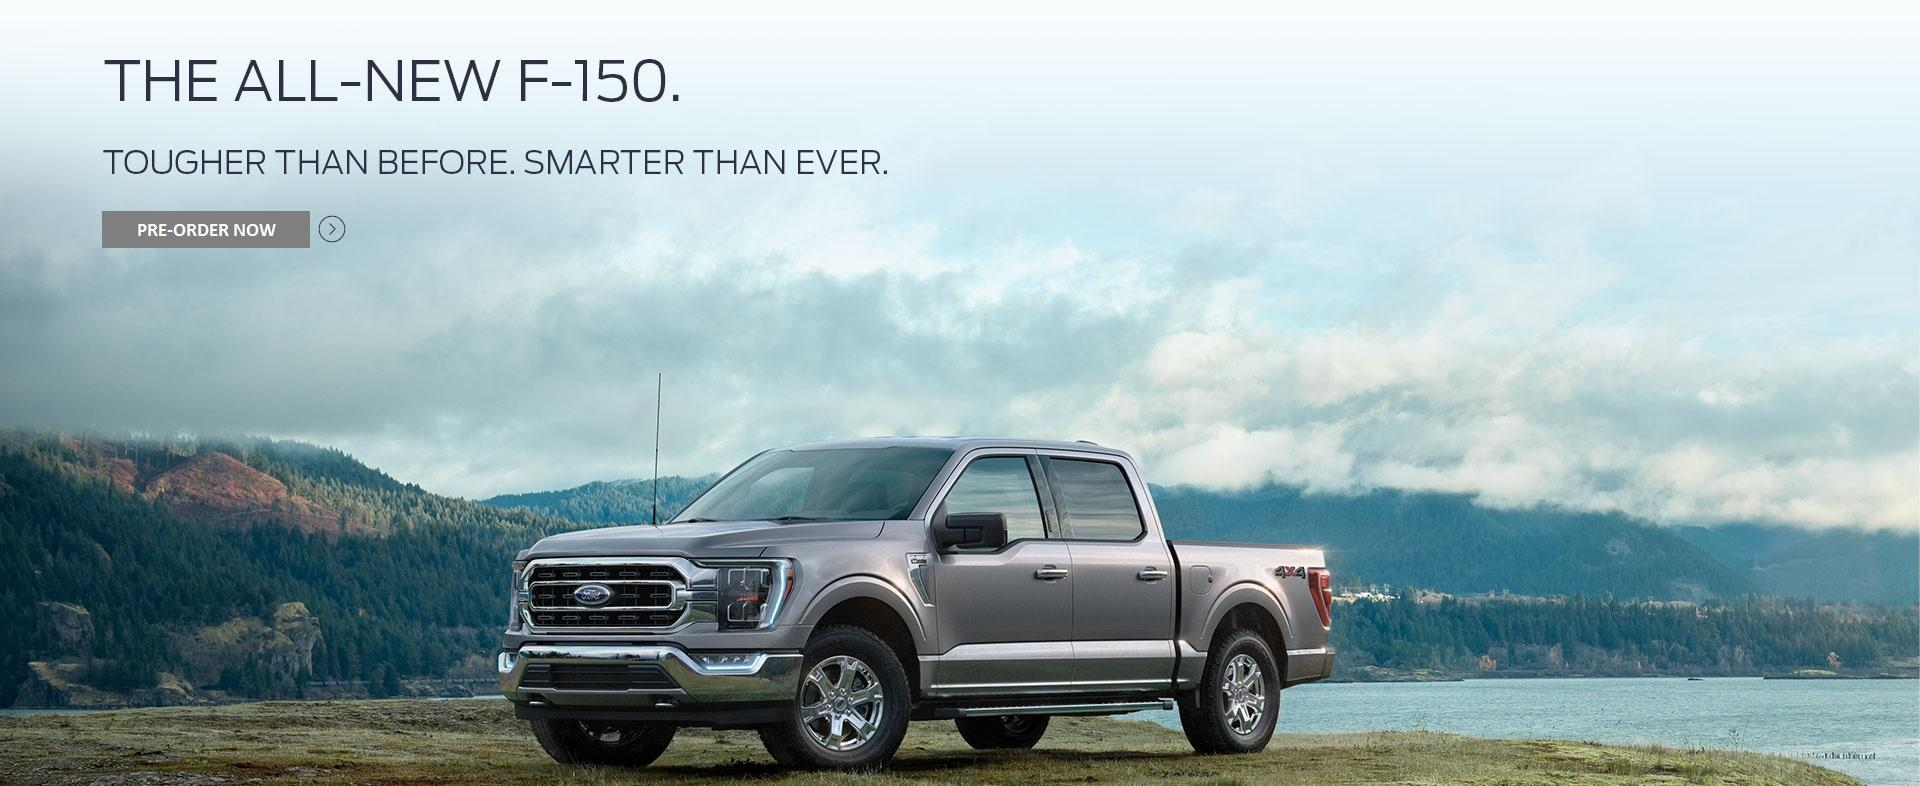 Clarenville Ford F-150 2021